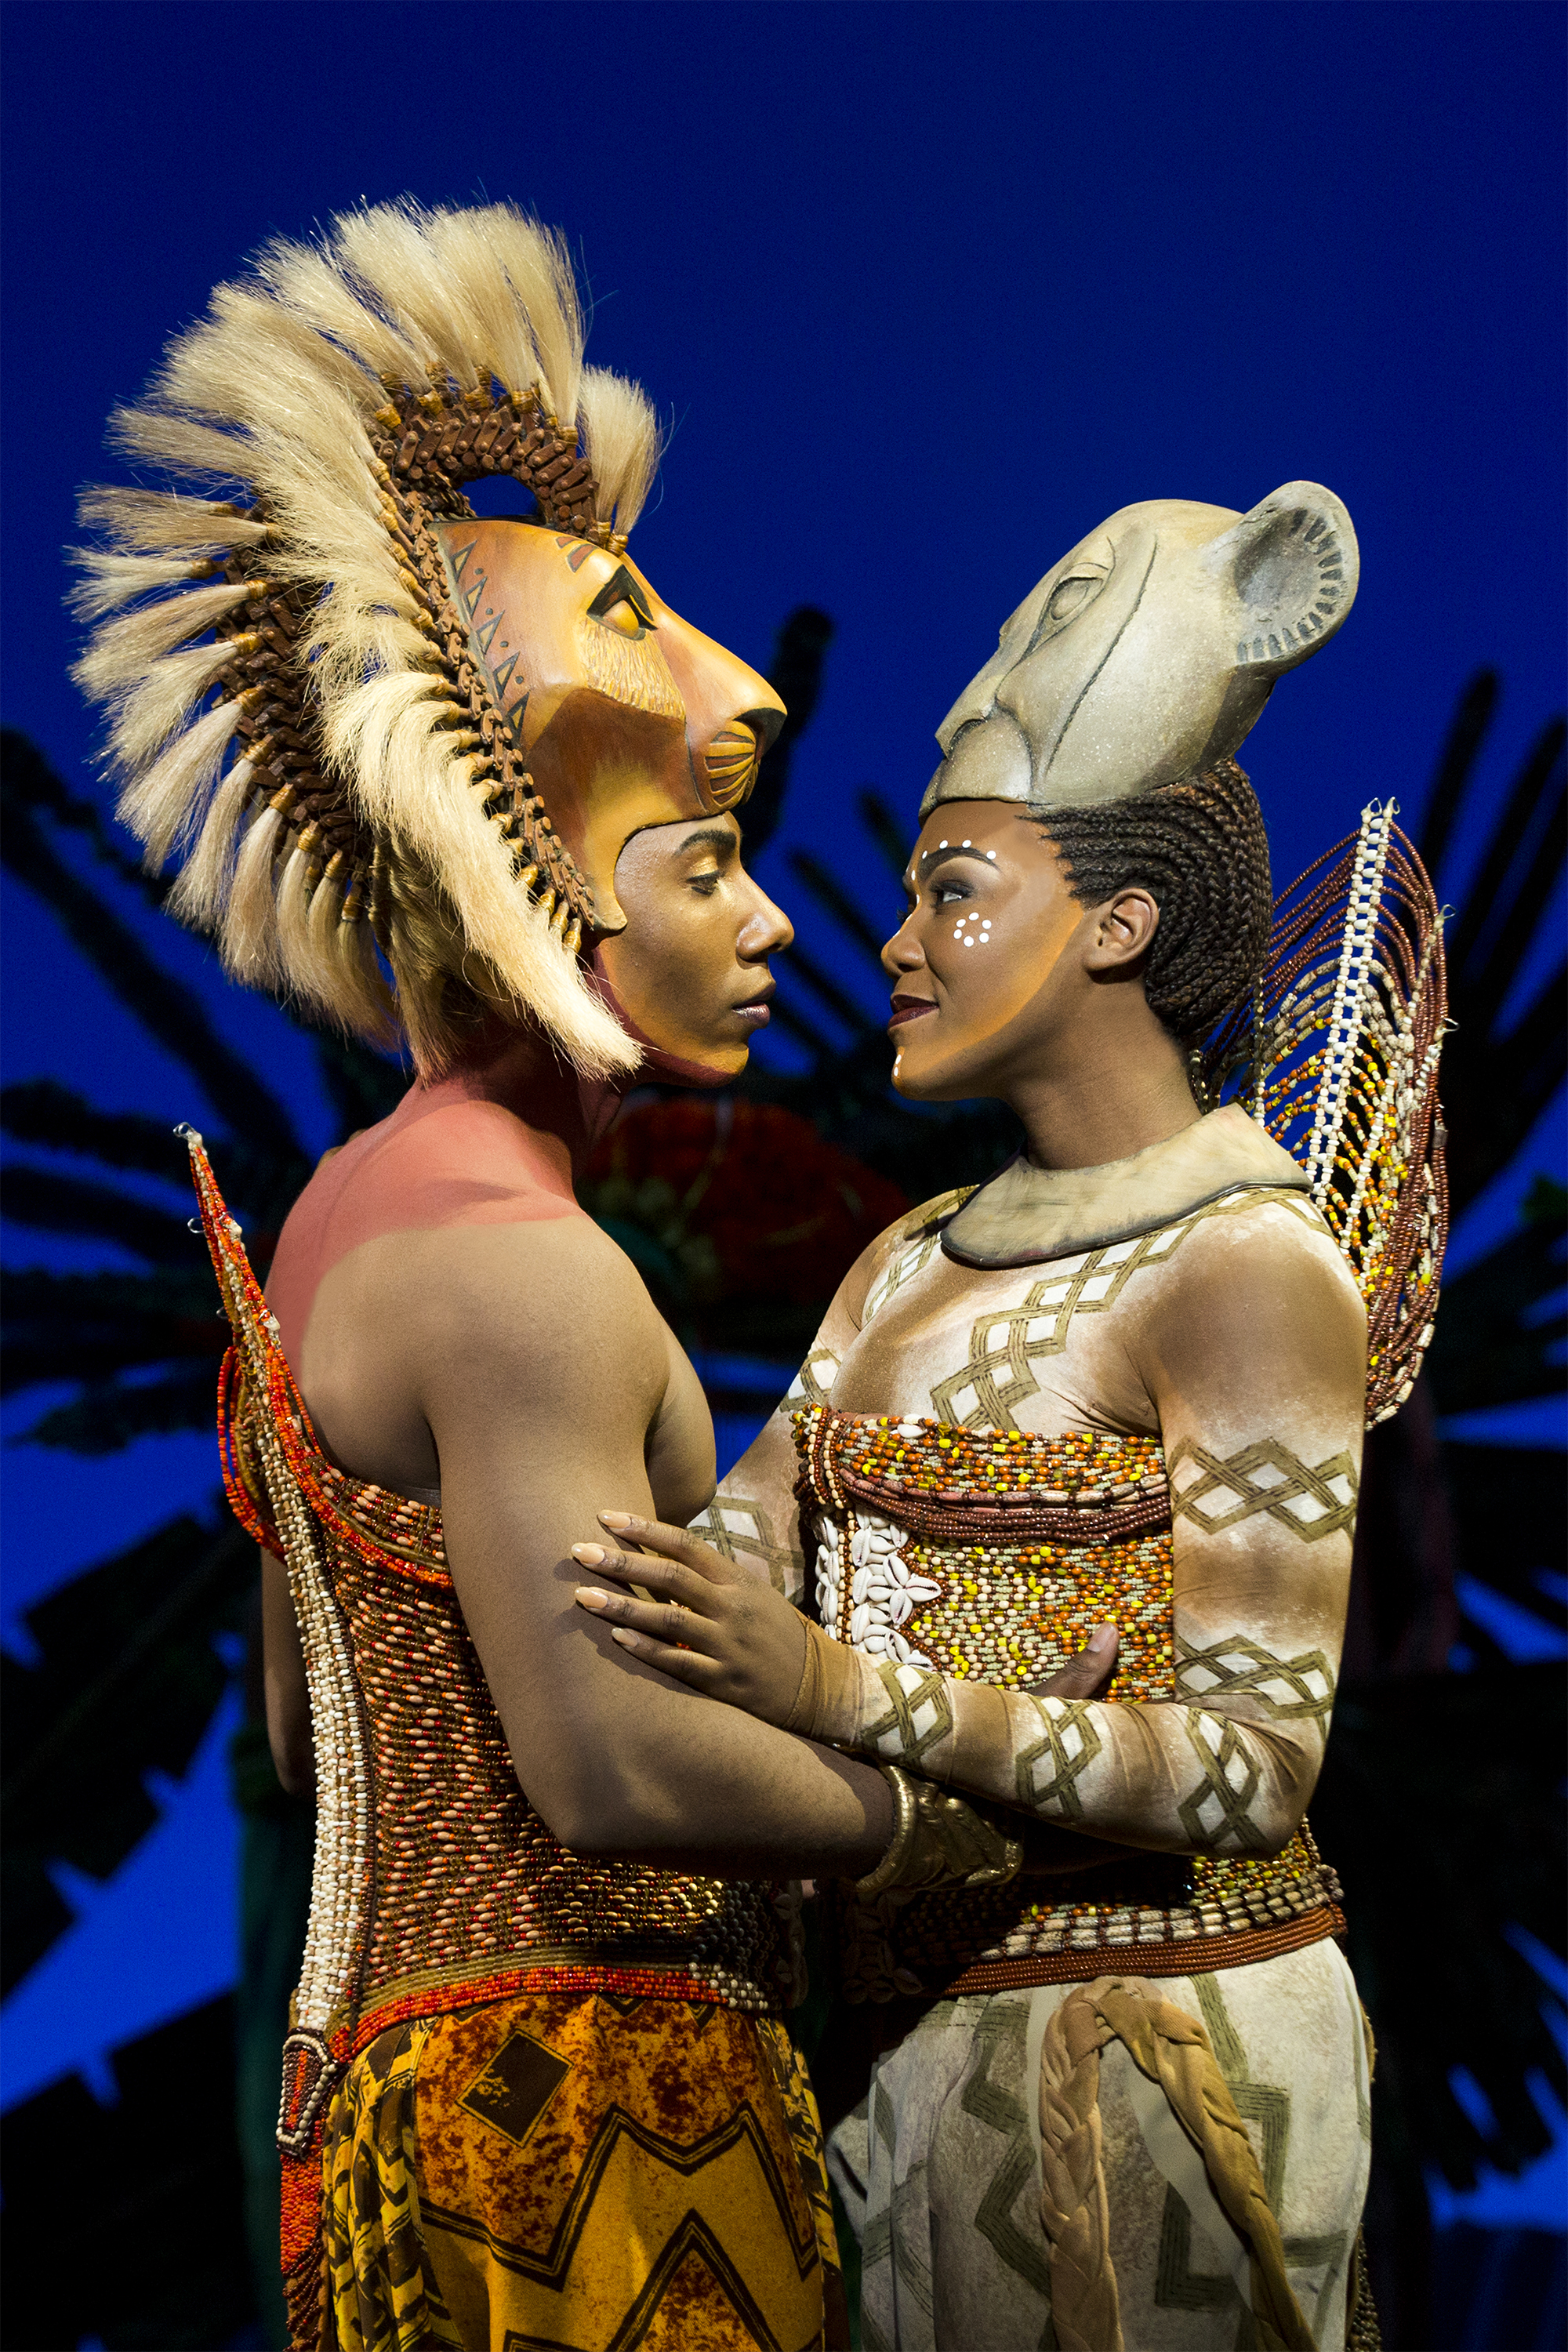 lion king the musical review One of the most popular disney animated musicals, the lion king presents the story of a lion cub's journey to adulthood and acceptance of his royal destiny simba (voiced first by jonathan taylor.